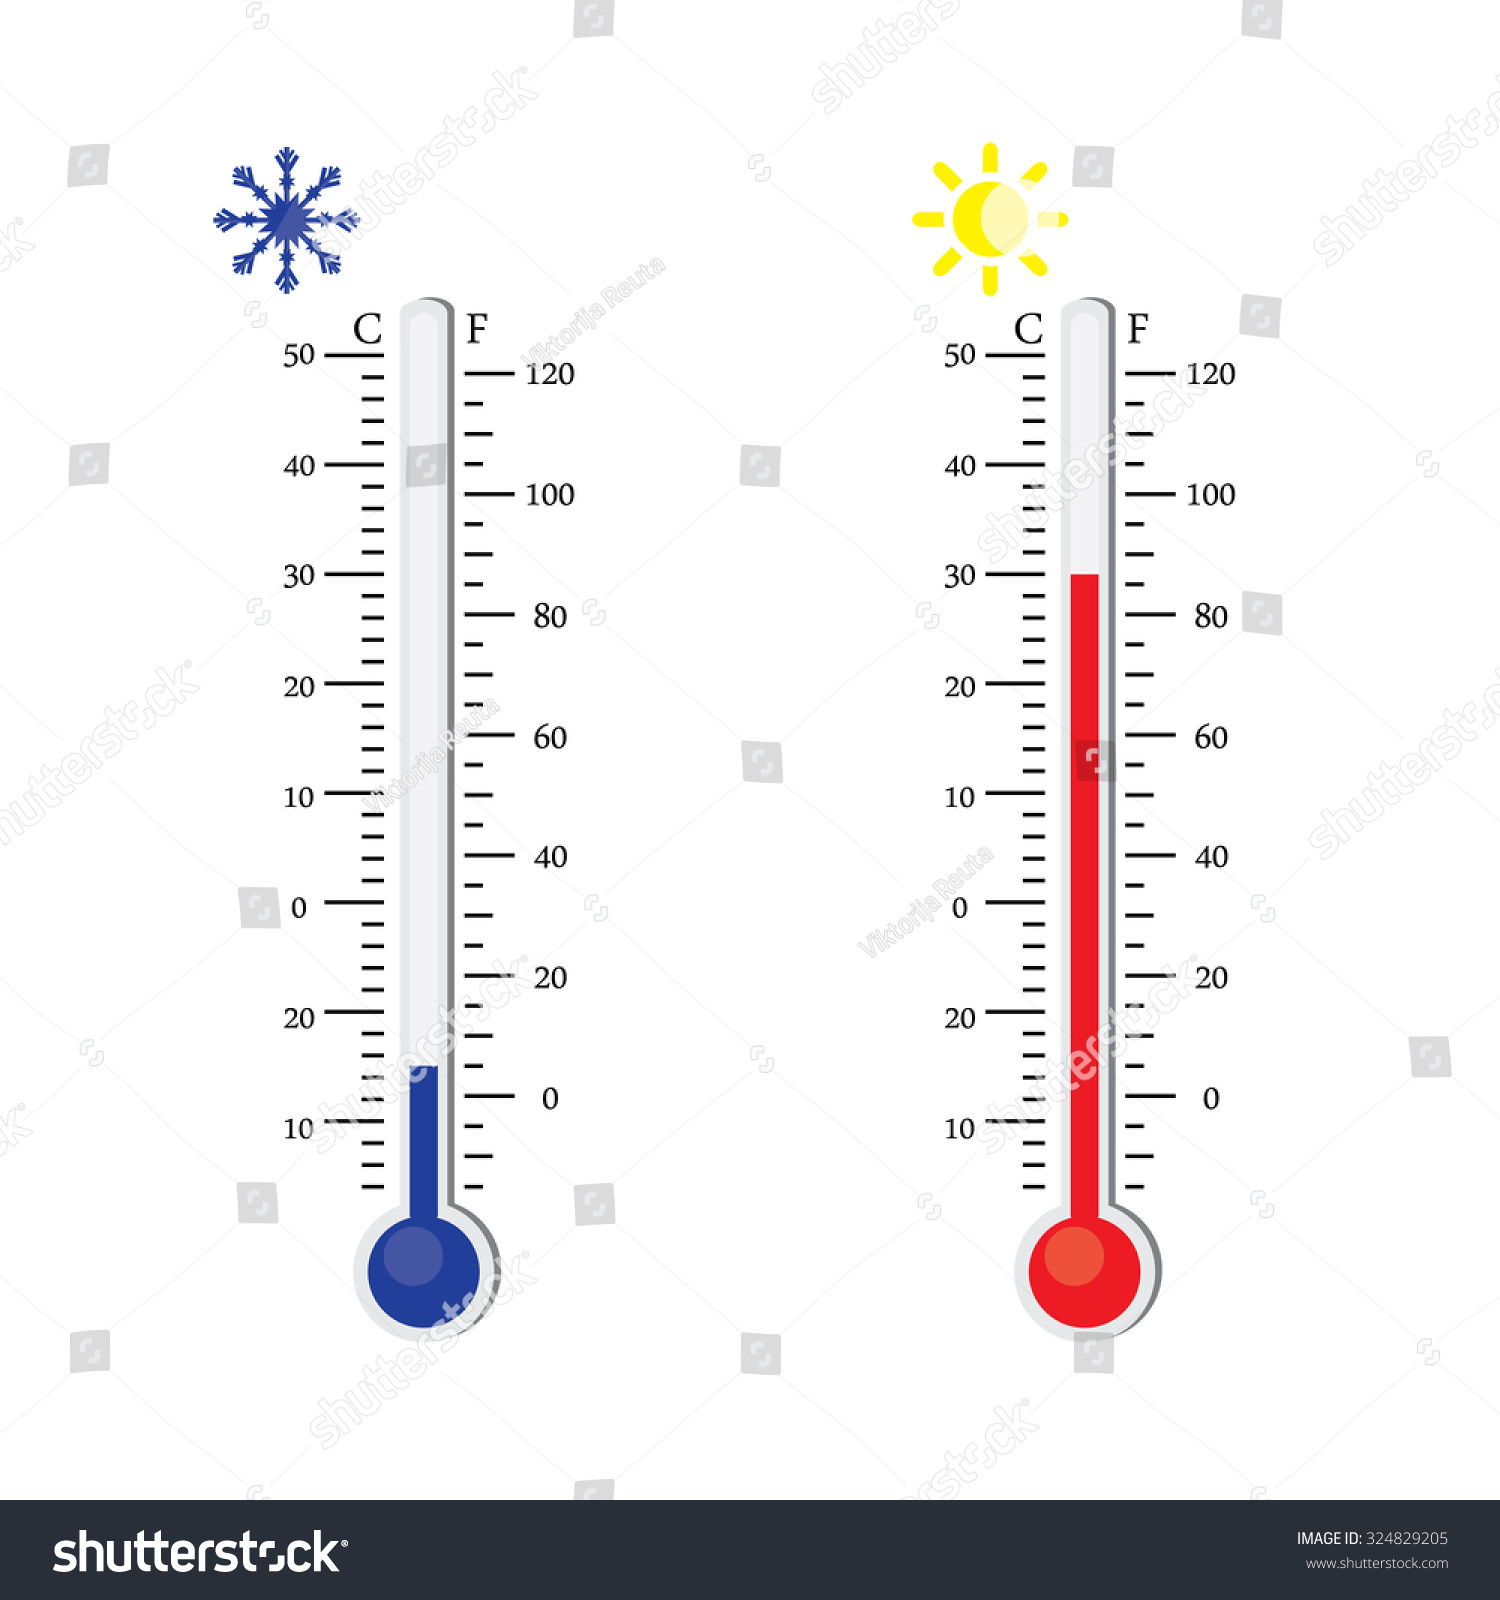 how to read a thermometer in fahrenheit